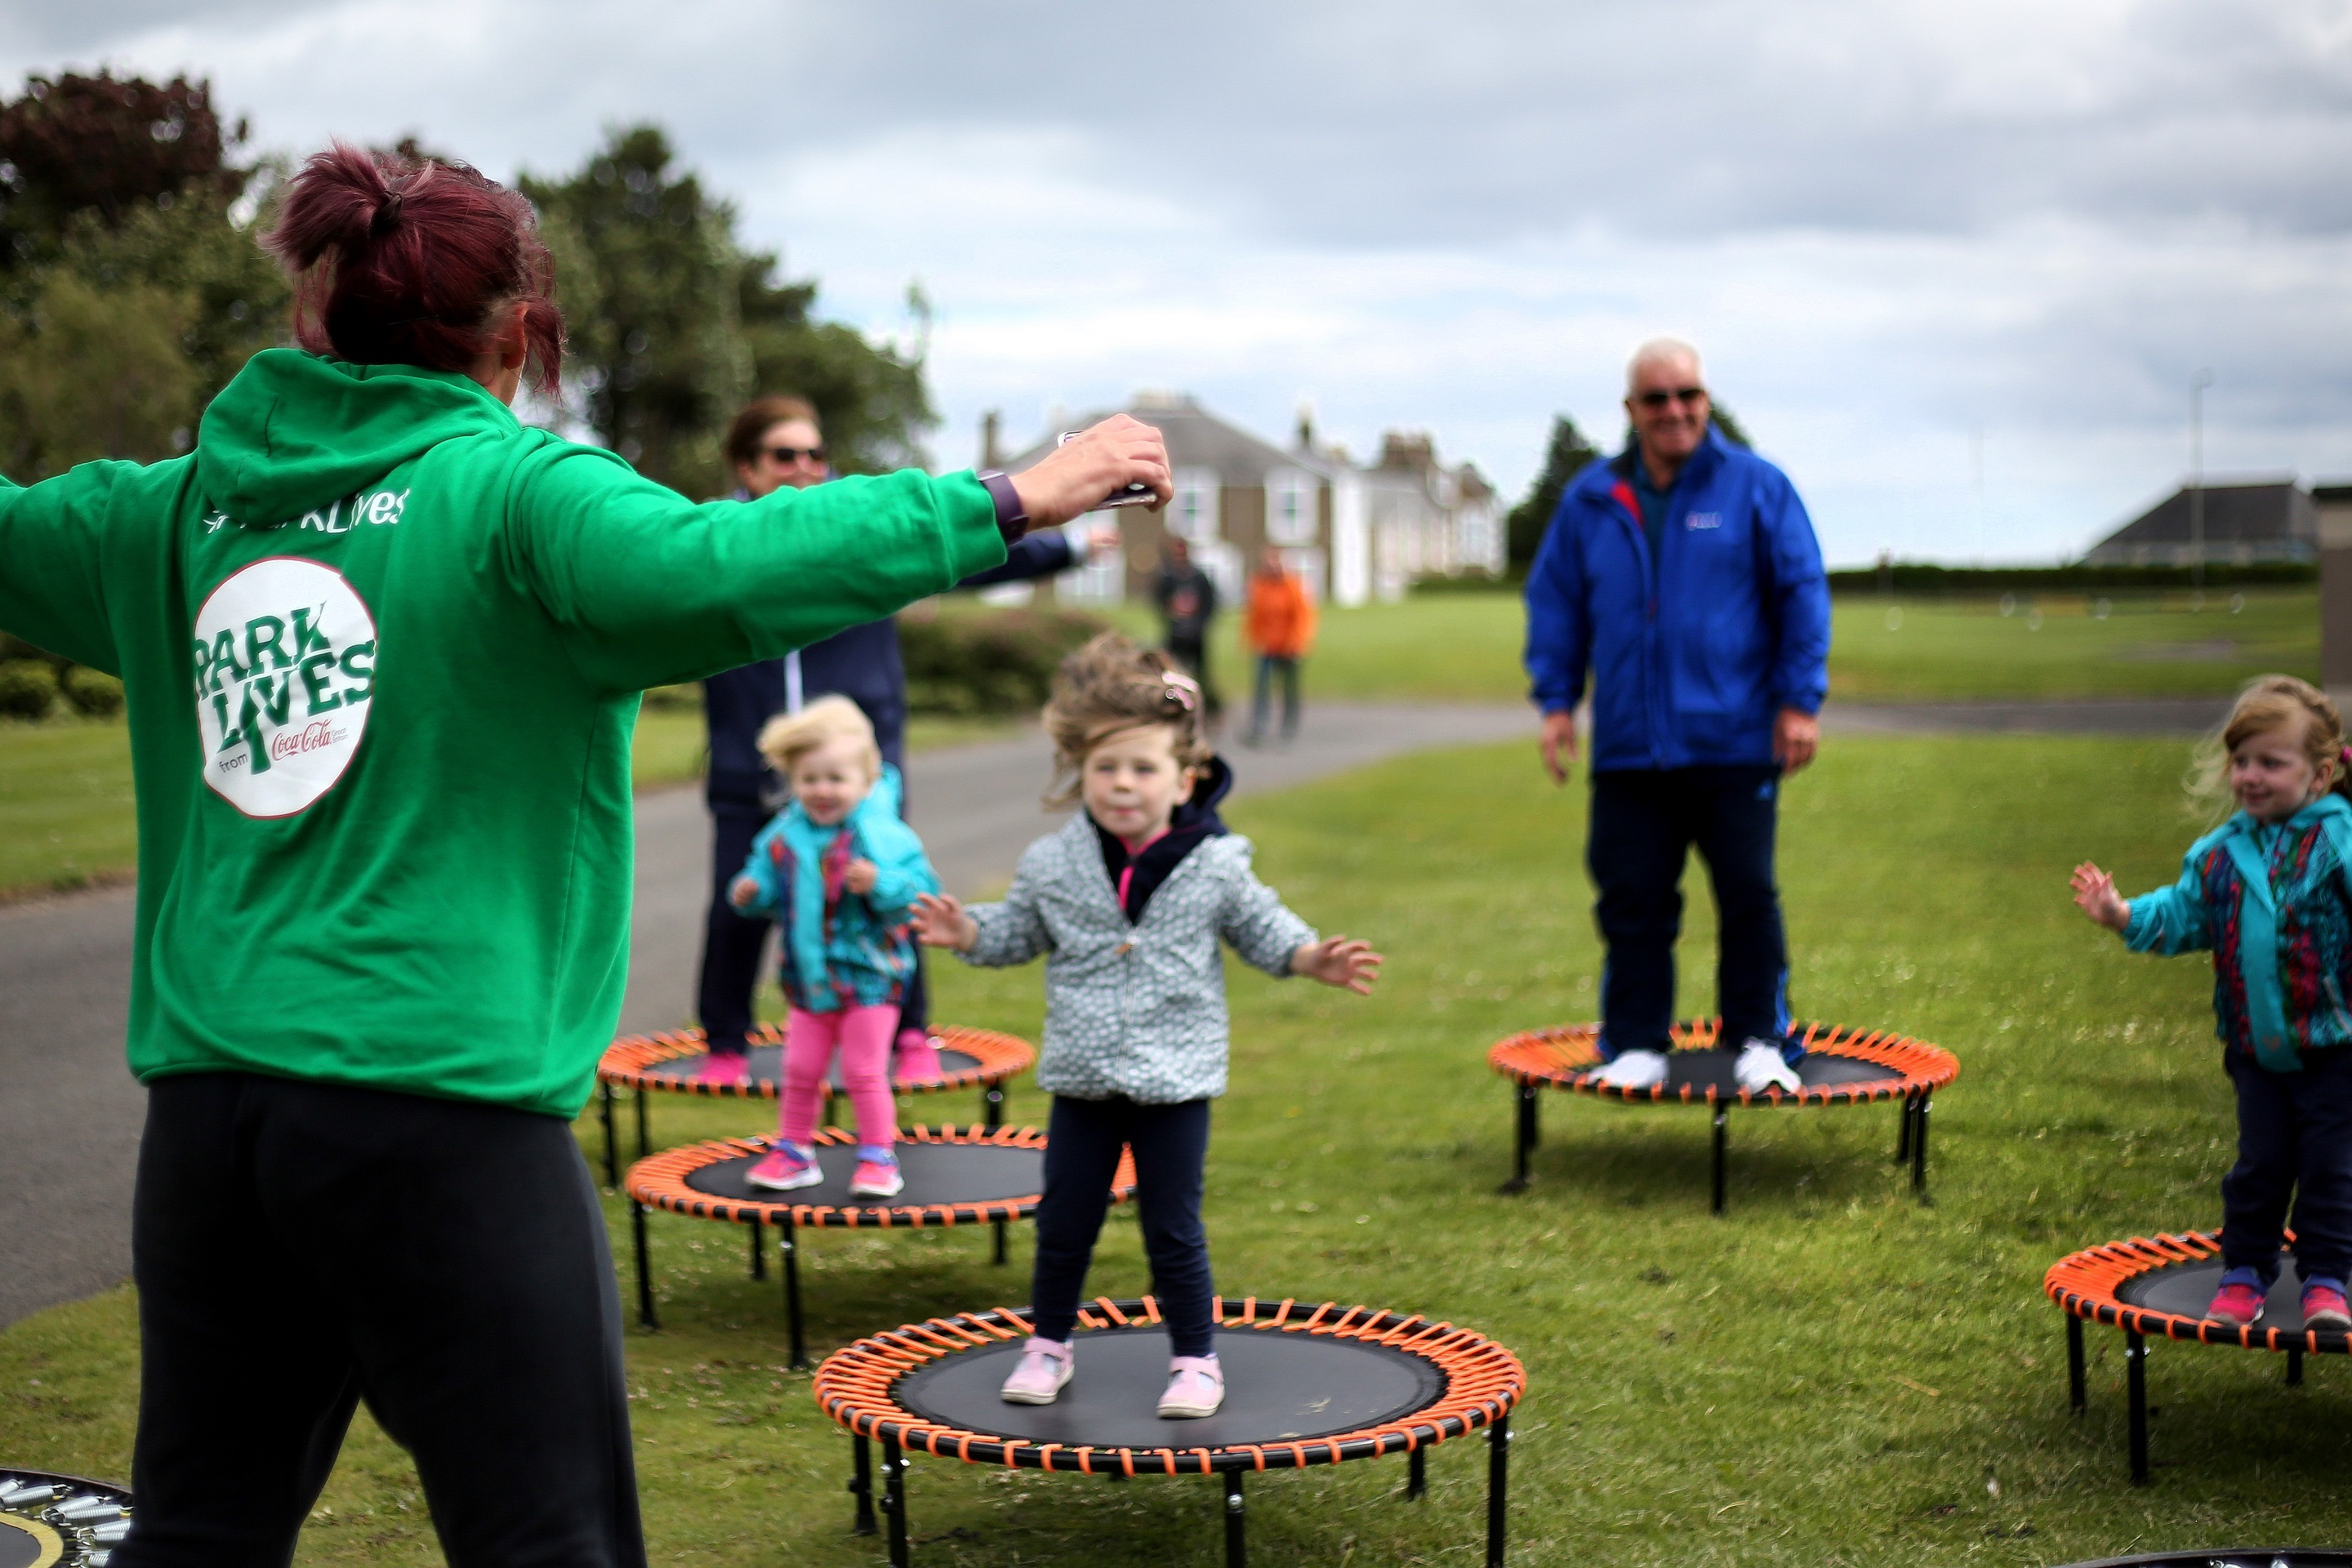 A ParkLives Dundee Bouncercise class in Castle Green